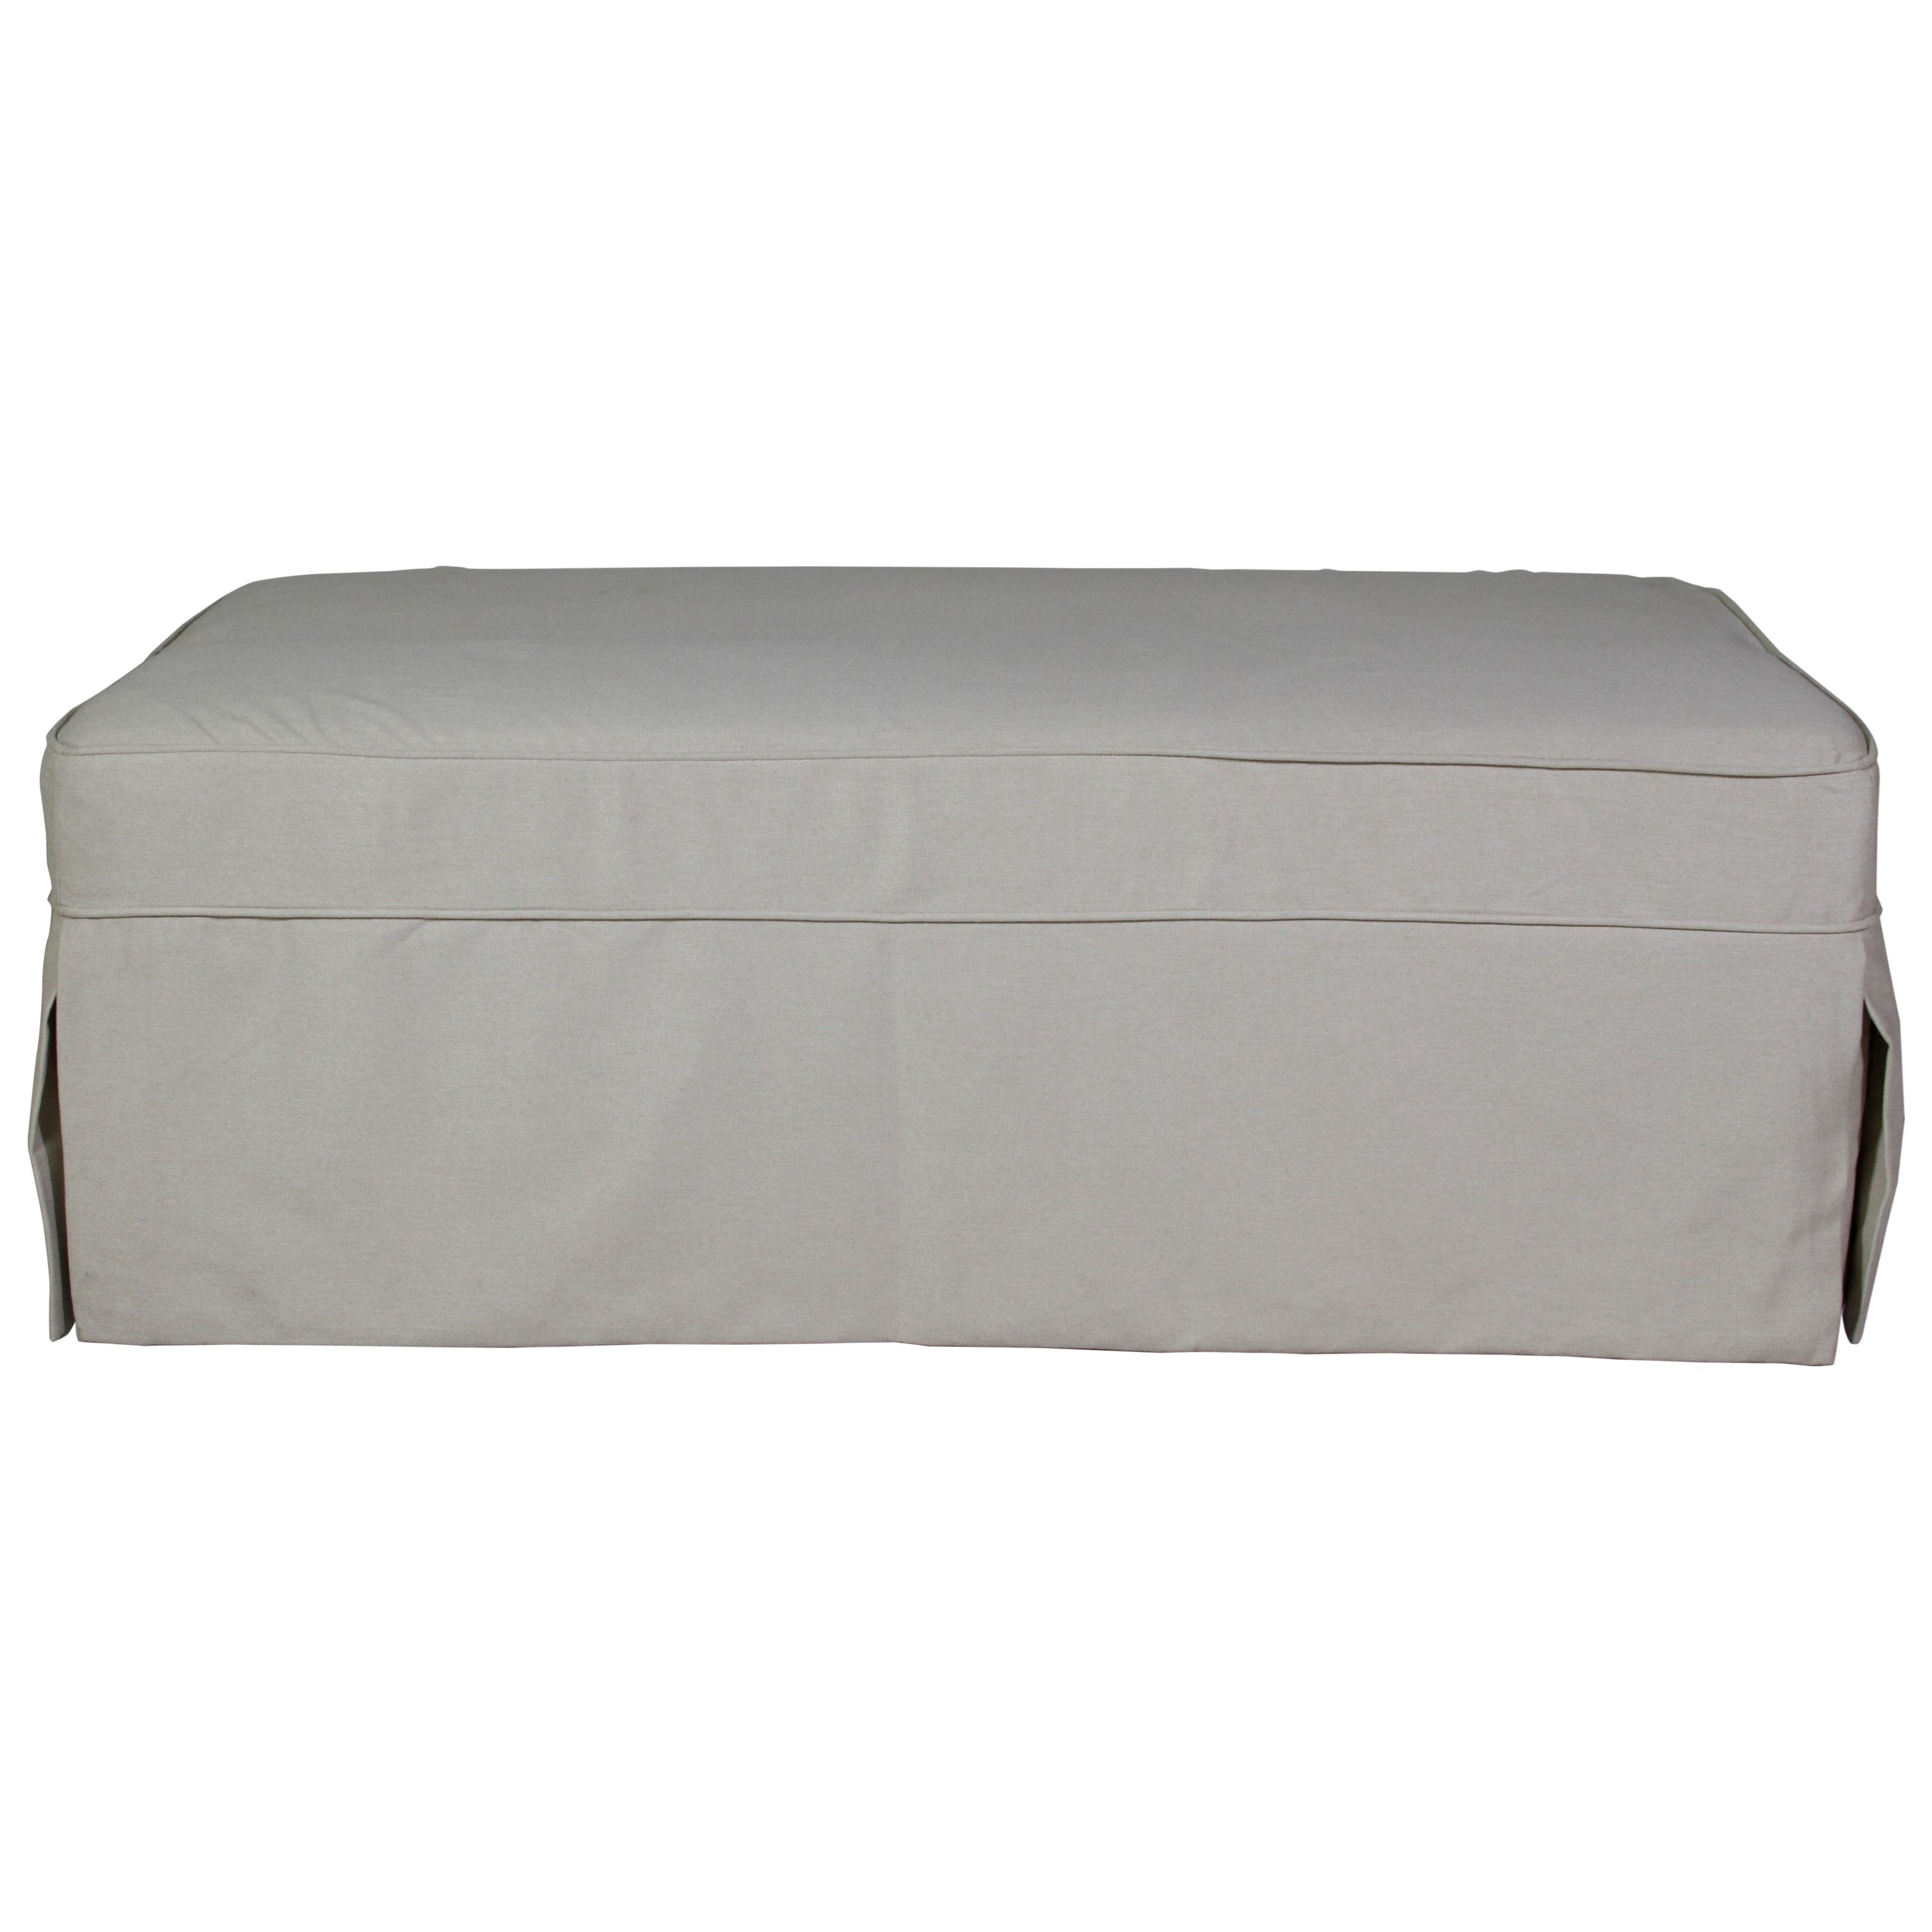 Synergy Home Furnishings Sunset Sleeper Ottoman - Item Number: 1023-80 3916-84